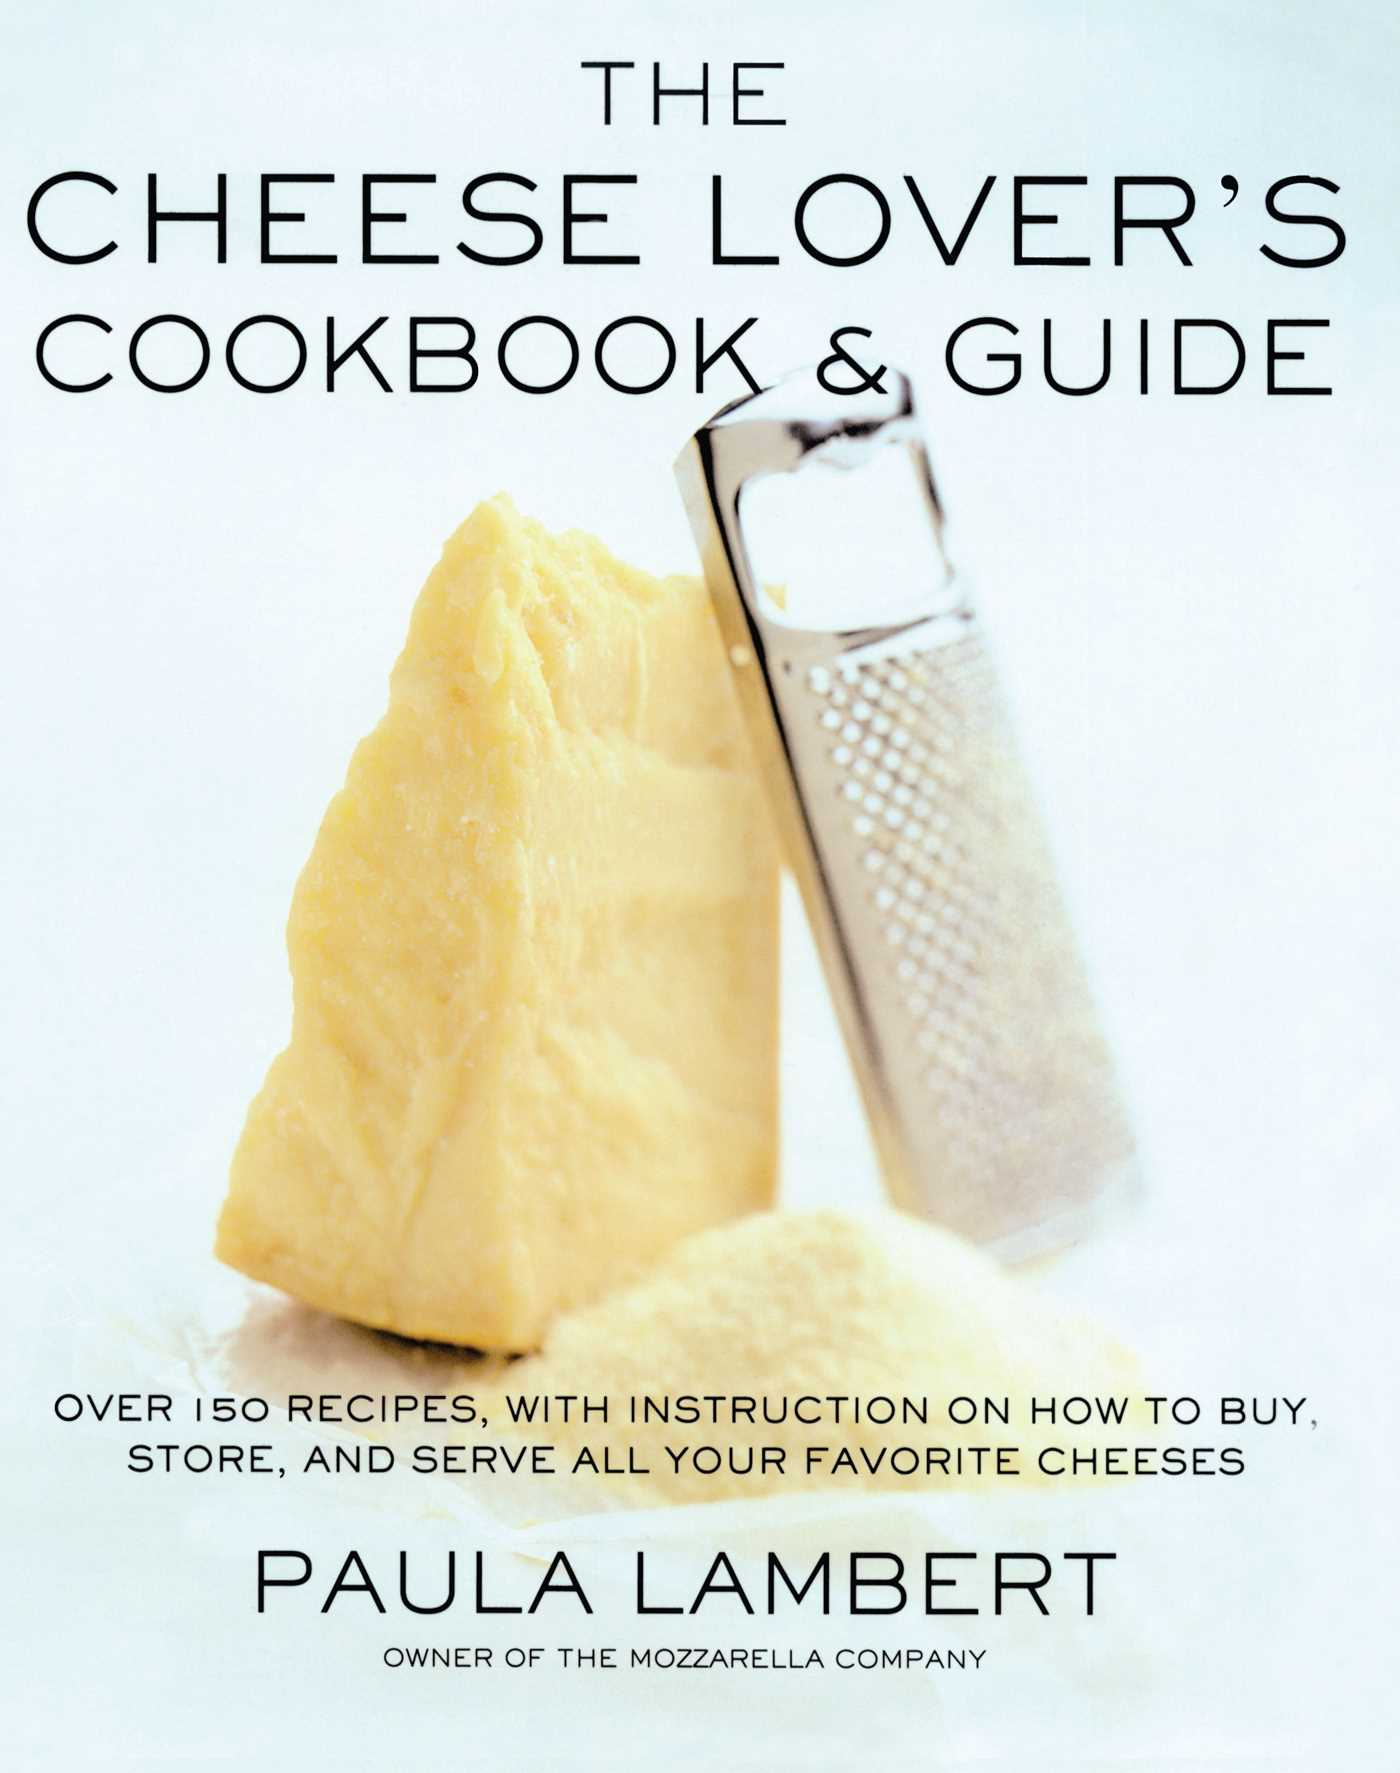 The cheese lovers cookbook guide 9780743213288 hr